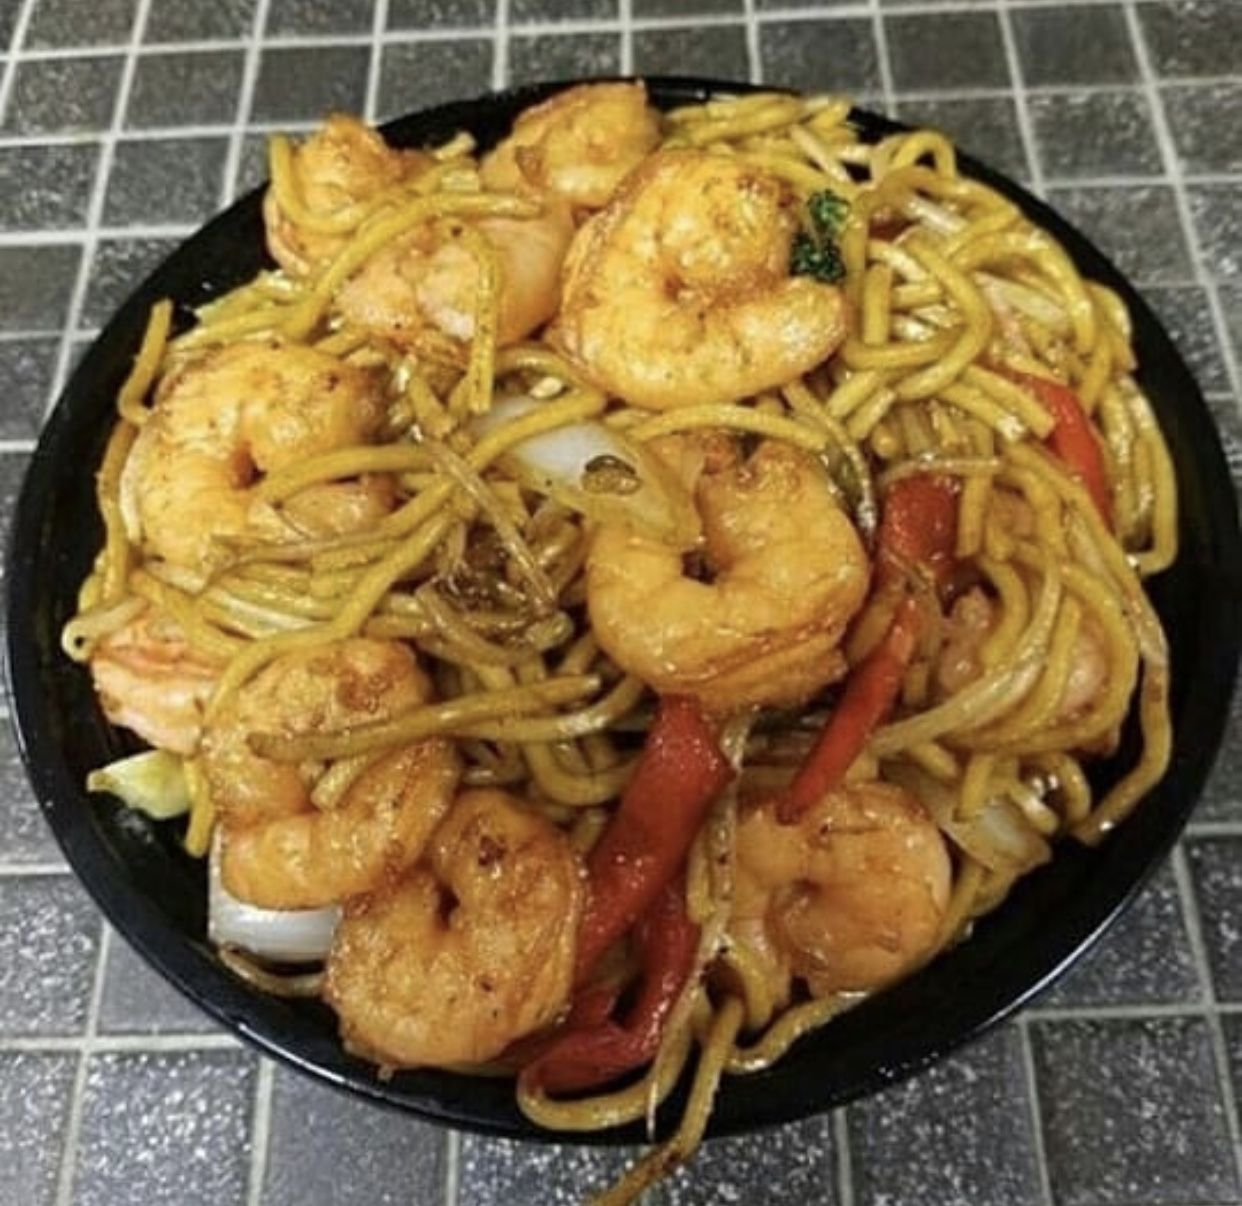 Shrimp Chinese Chinesefood Delicious Goodfood Food Good Food Delicious